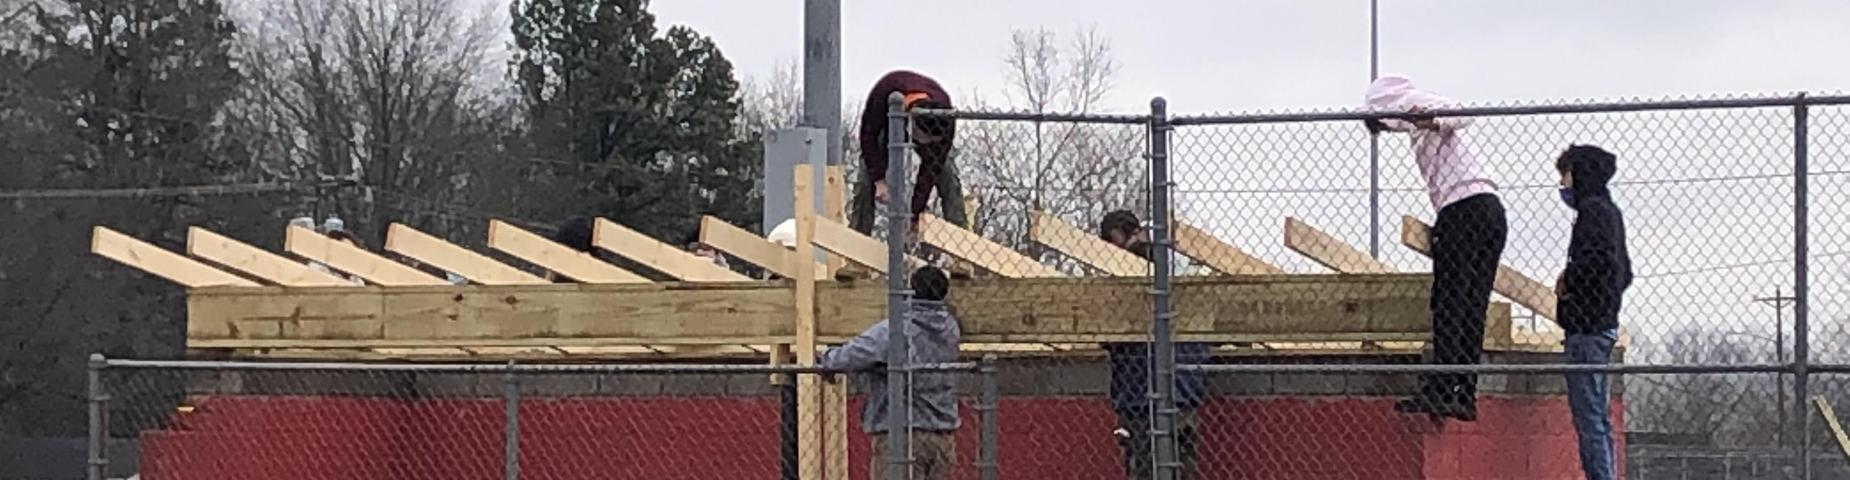 Mr. Hutchins shop class working on putting a new roof on the softball dugouts.